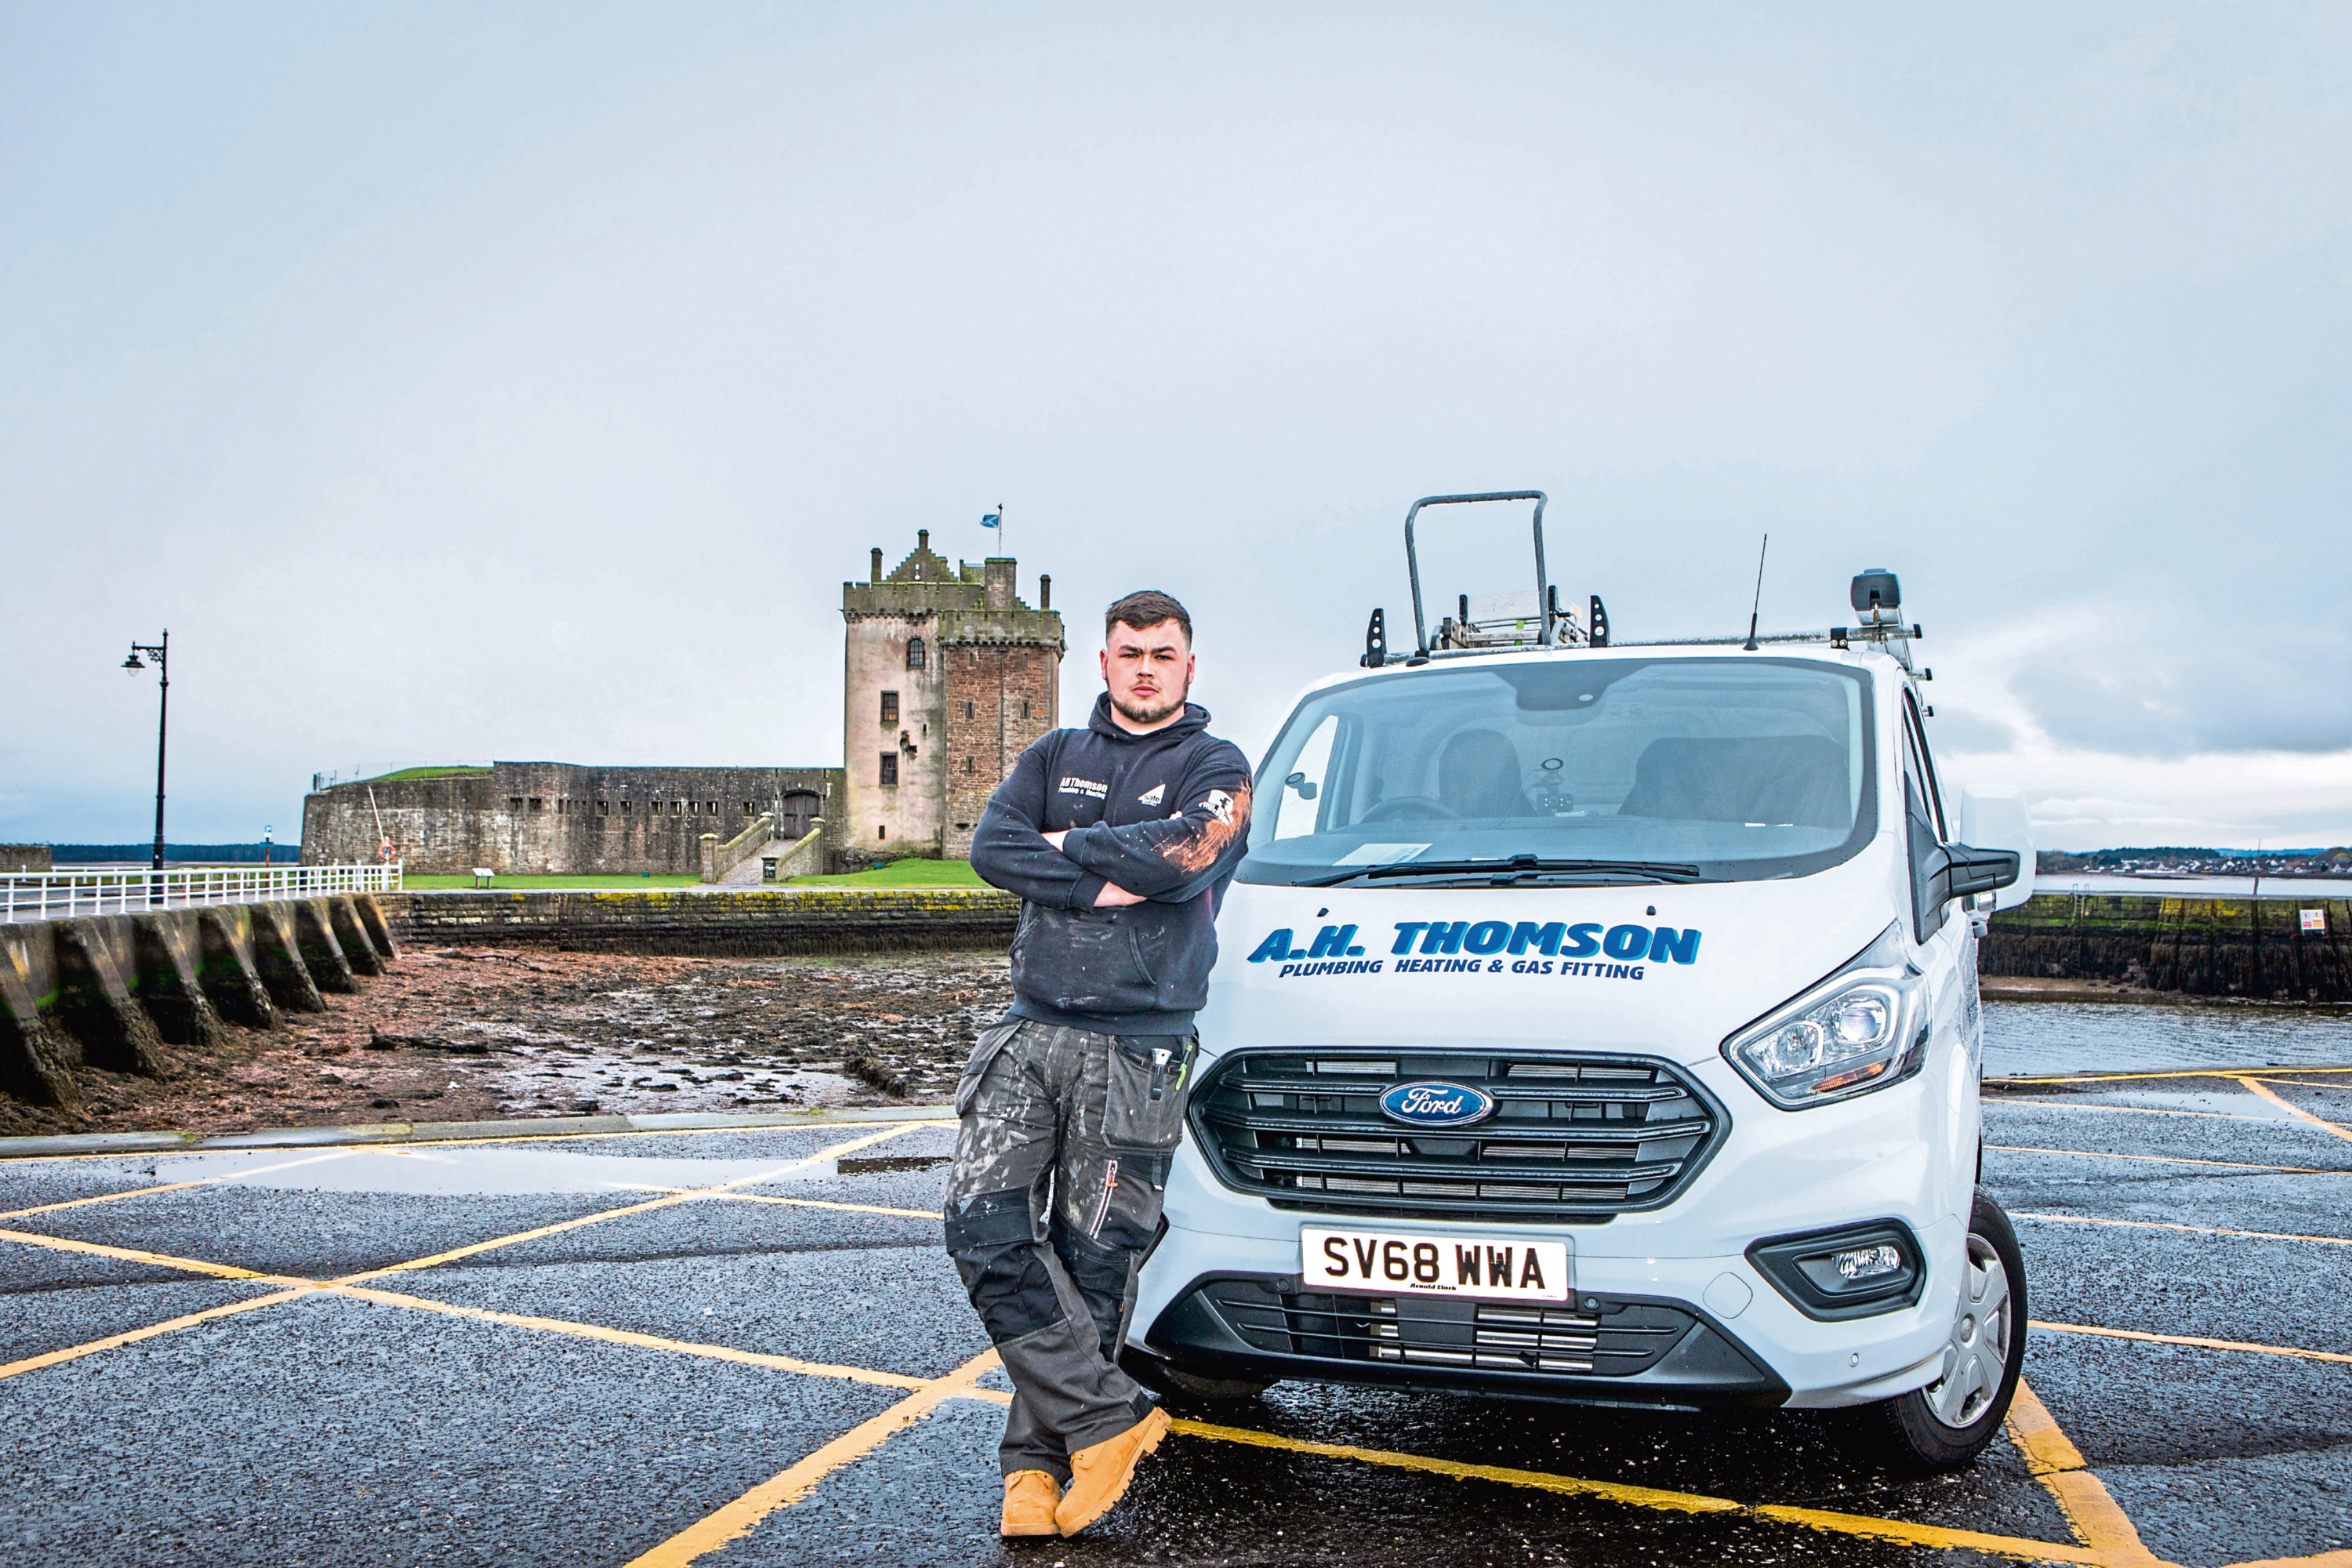 Andrew Hutton Thomson carried out work for free, along with other city tradesmen.